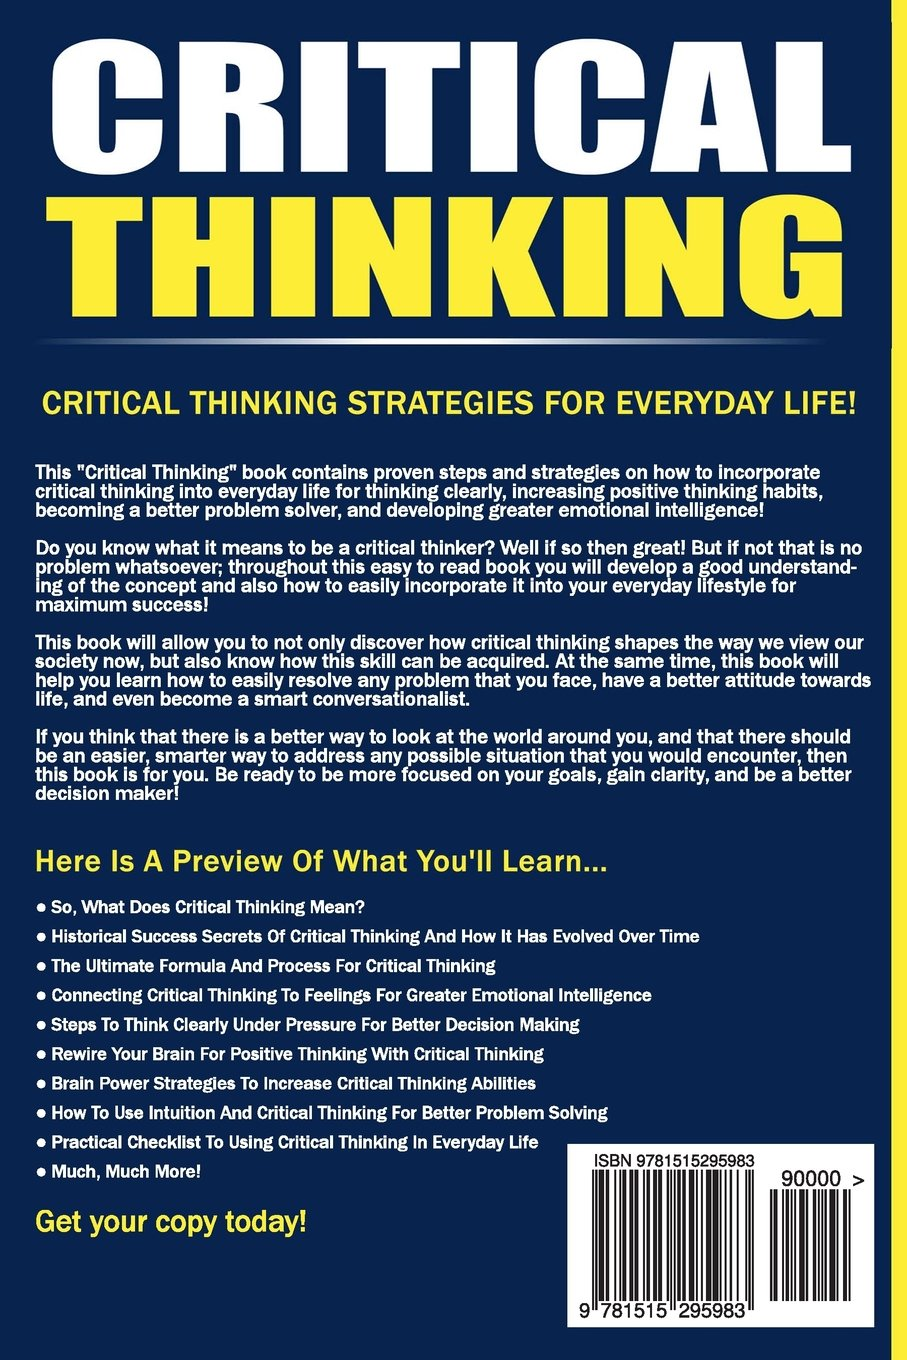 how do we use critical thinking in everyday life